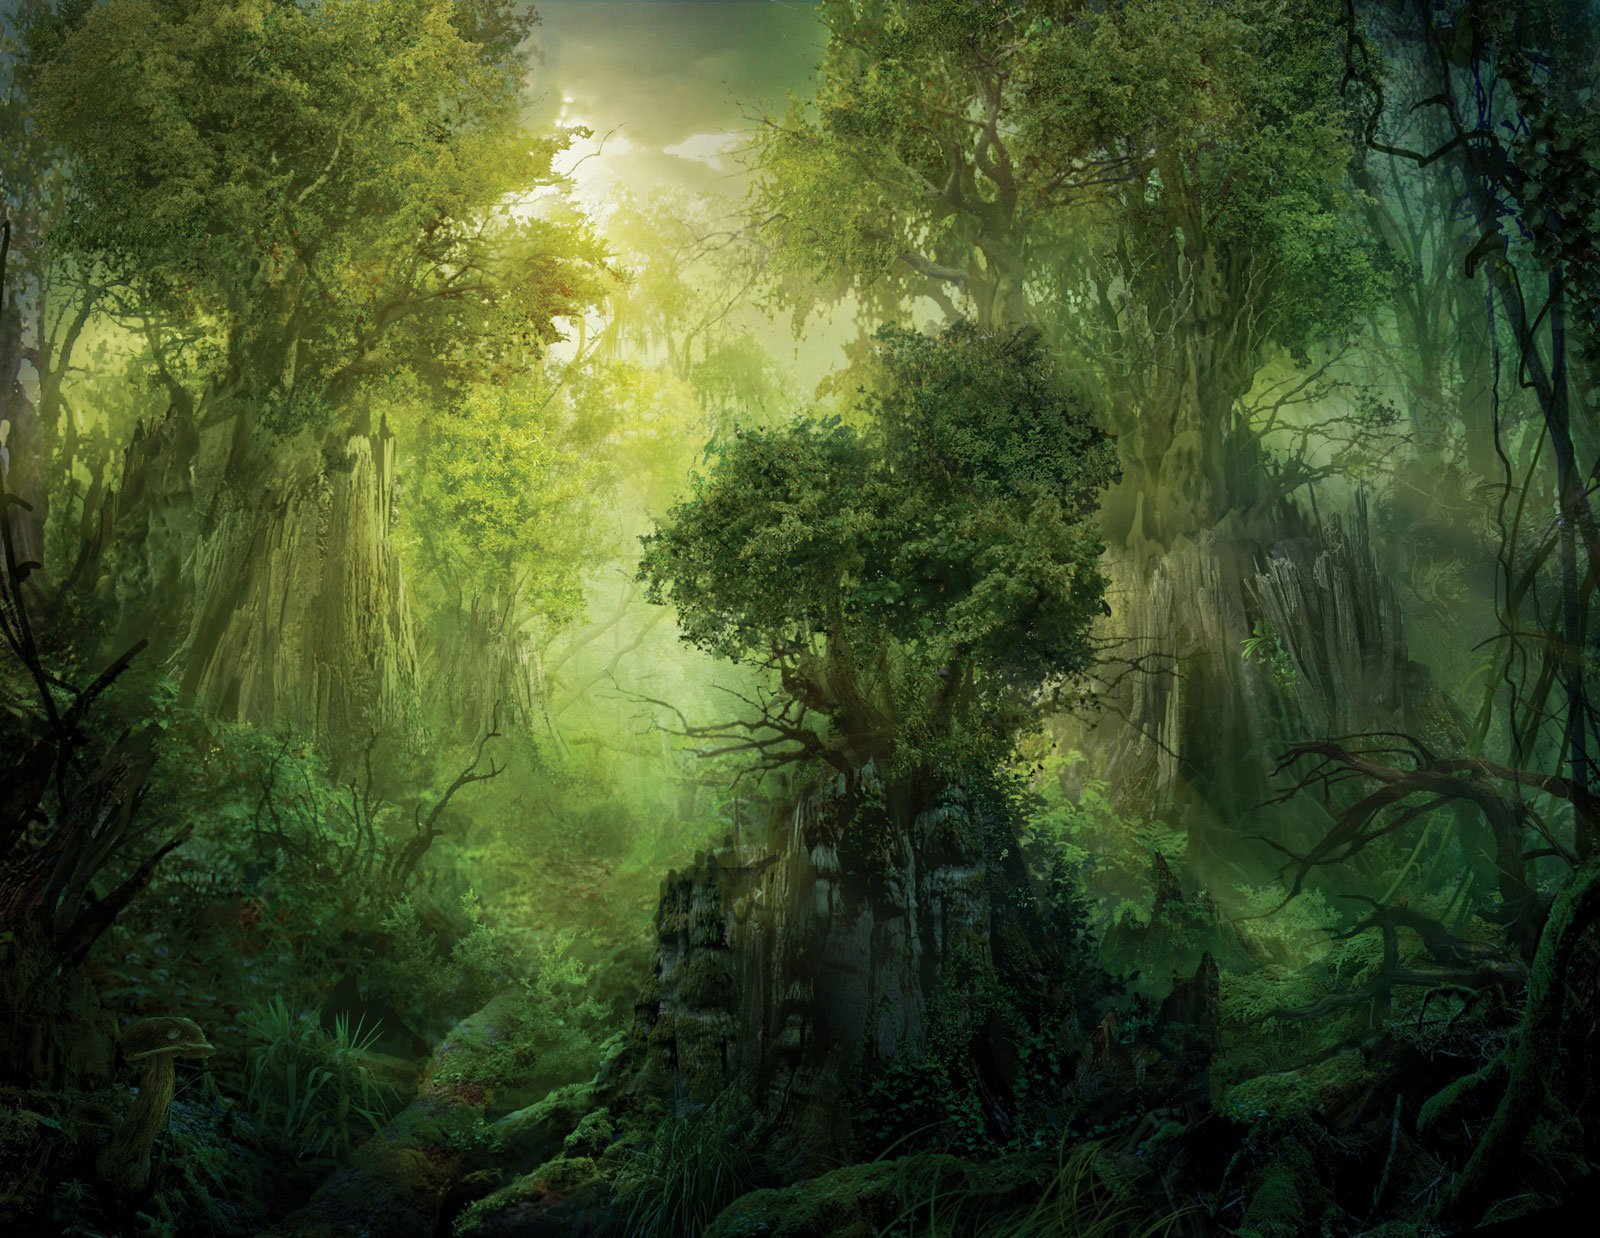 Forest nature tree landscape wallpaper | 3840x1080 | 799916 ...